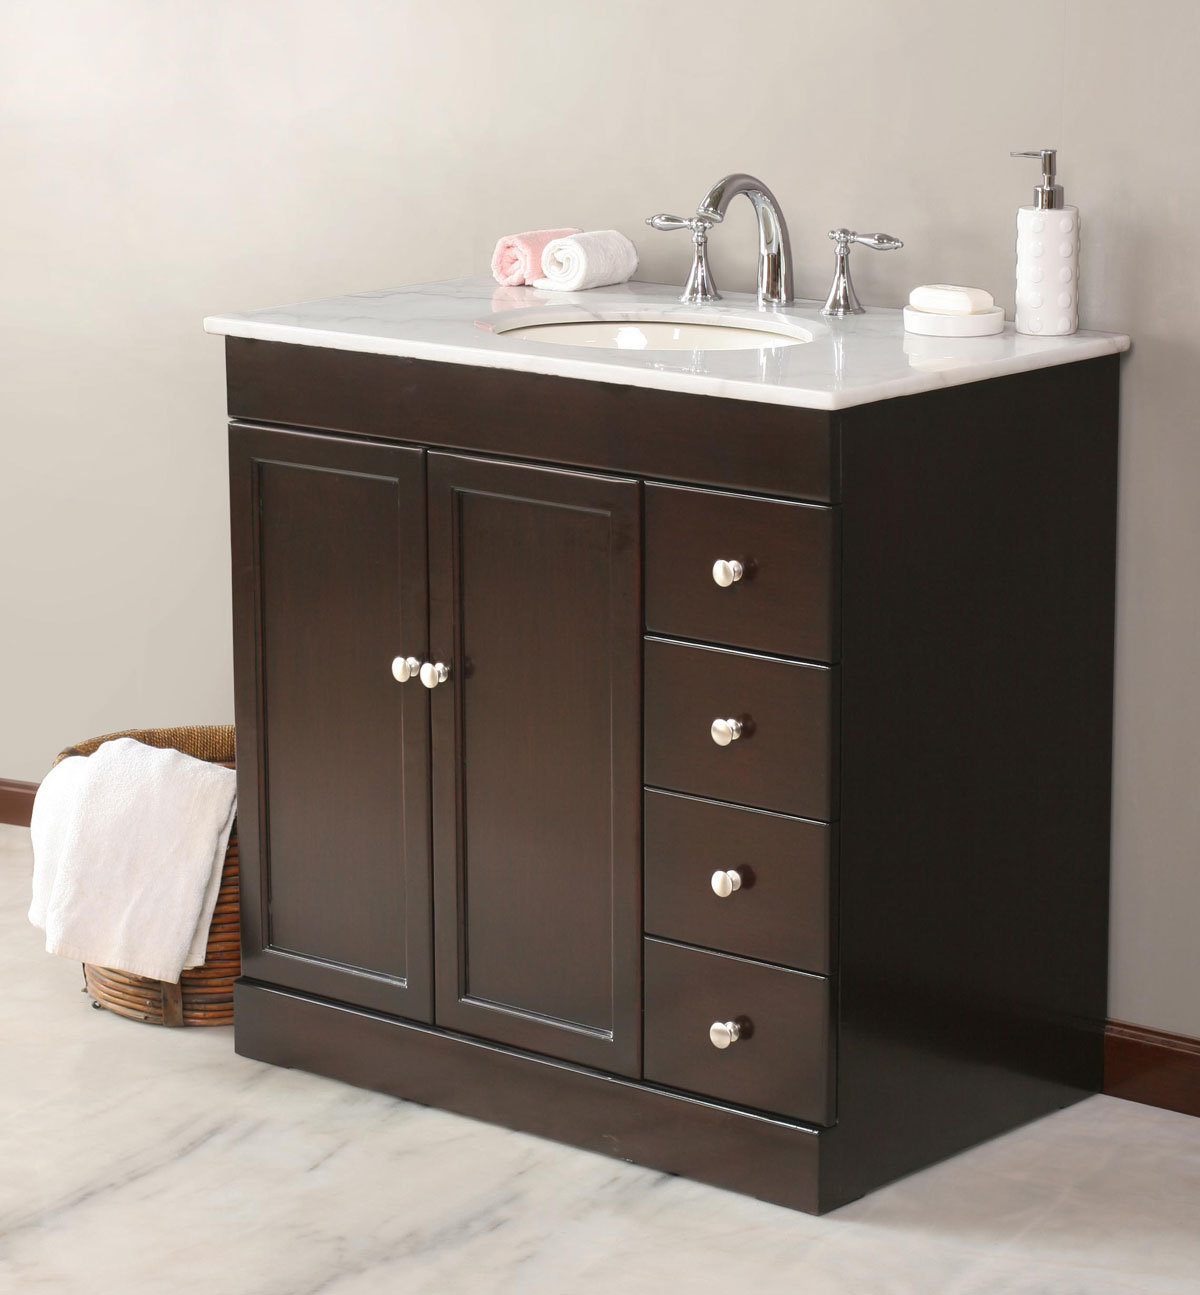 top bathroom vanity furniture mj 3119 china bathroom vanity